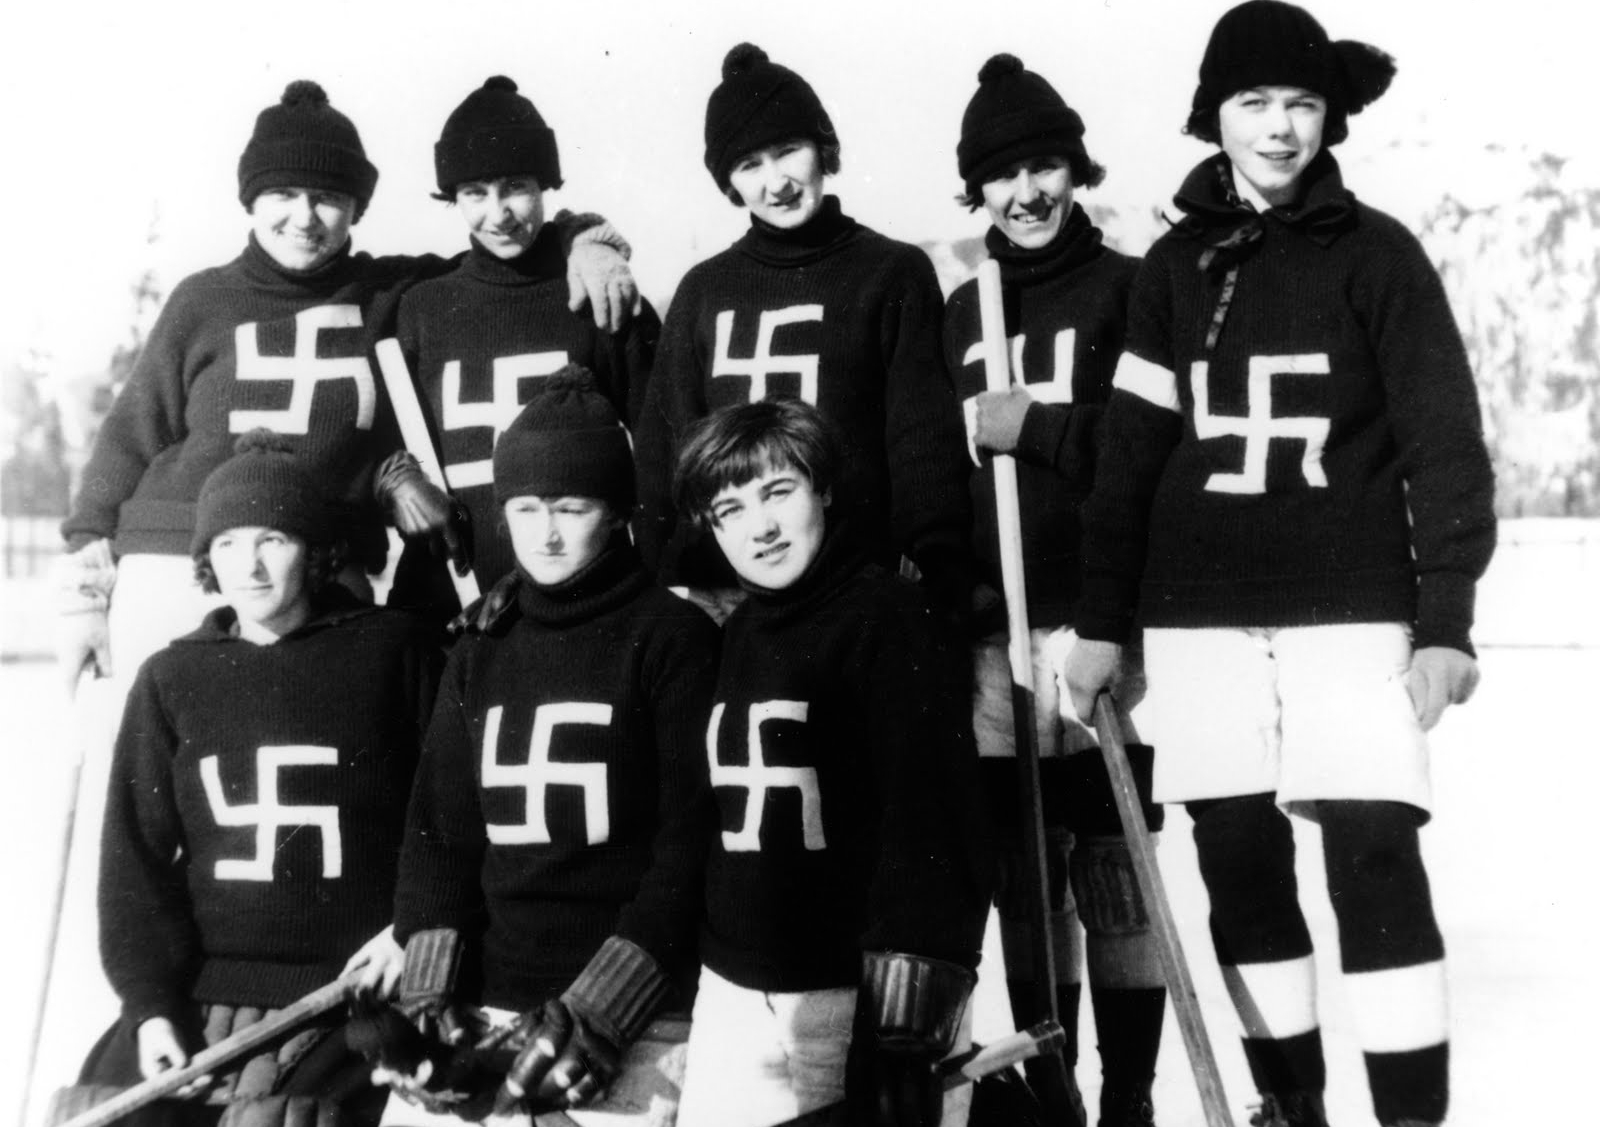 The Fernie Swastikas (c. 1922) wore red sweaters with a crooked cross in white, a symbol of good luck until perverted by the Nazis. Photo: Fernie and District Historical Society, no. 972